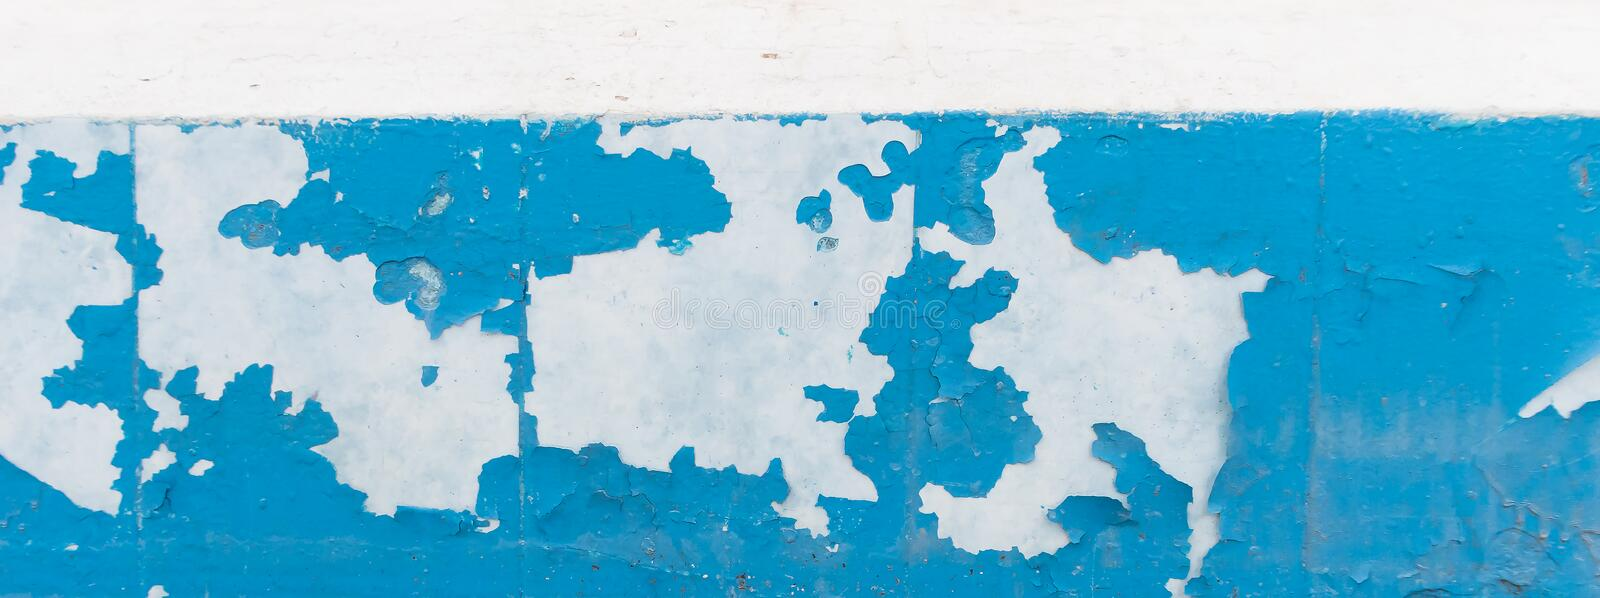 Wall with old peeling blue paint. Texture of old peeling paint, vintage graffiti background, it`s time to make repairs, cracked paint texture.  Clipart stock photos